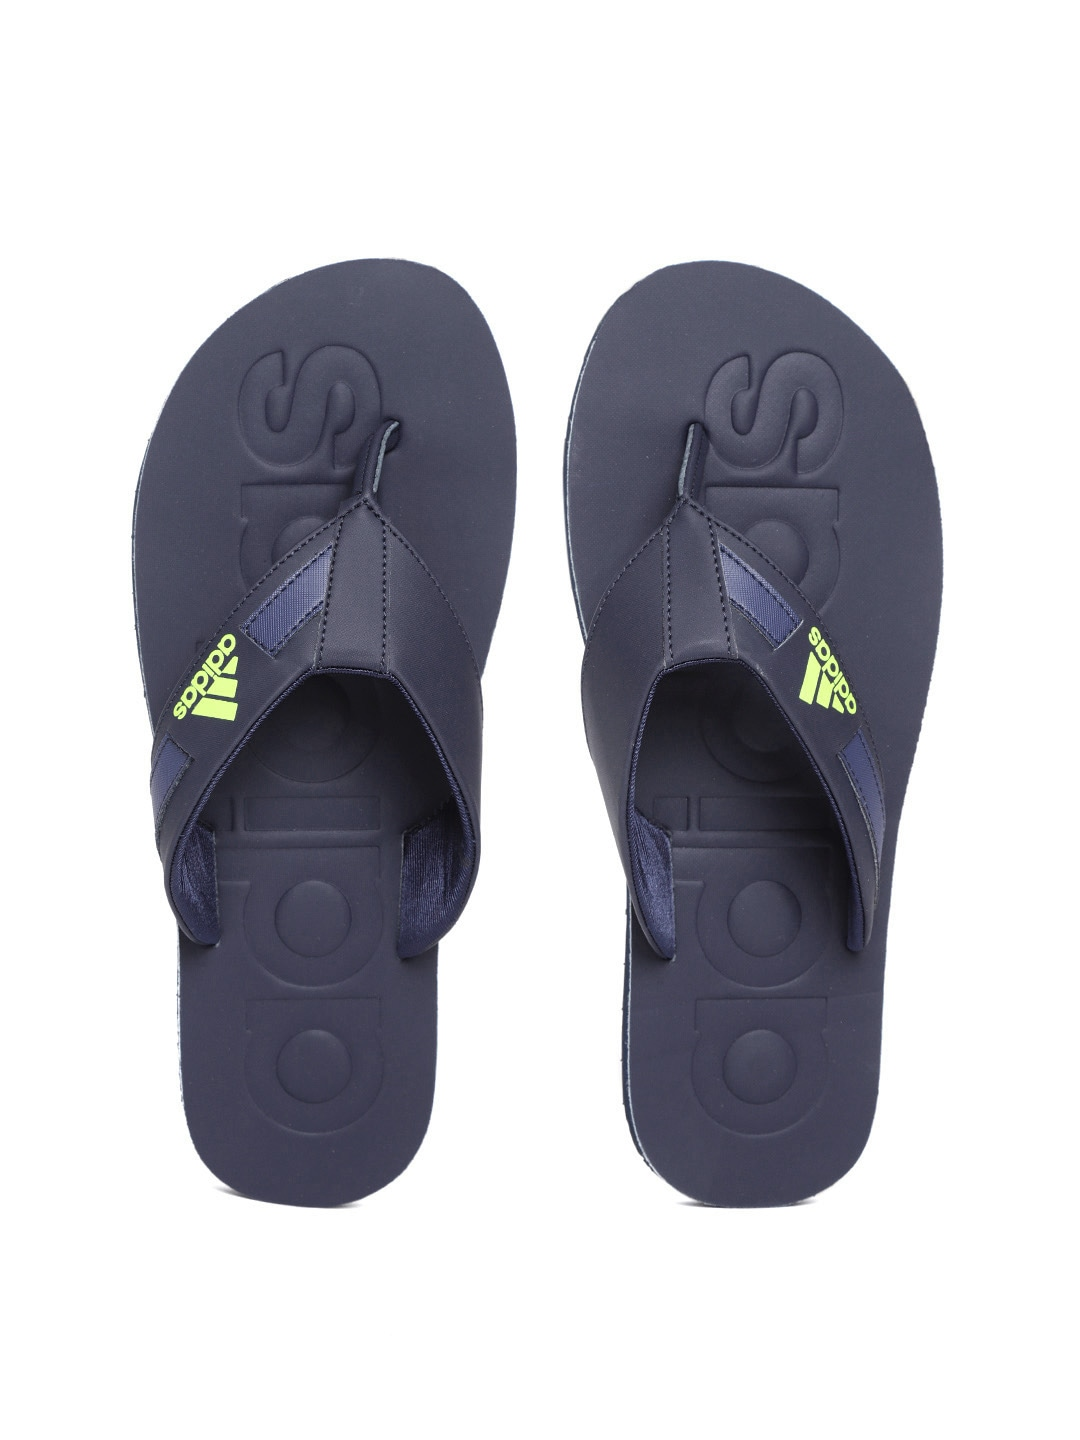 b23f735f1343 Pepito Adidas Flip Flops Wristbands Watches - Buy Pepito Adidas Flip Flops  Wristbands Watches online in India